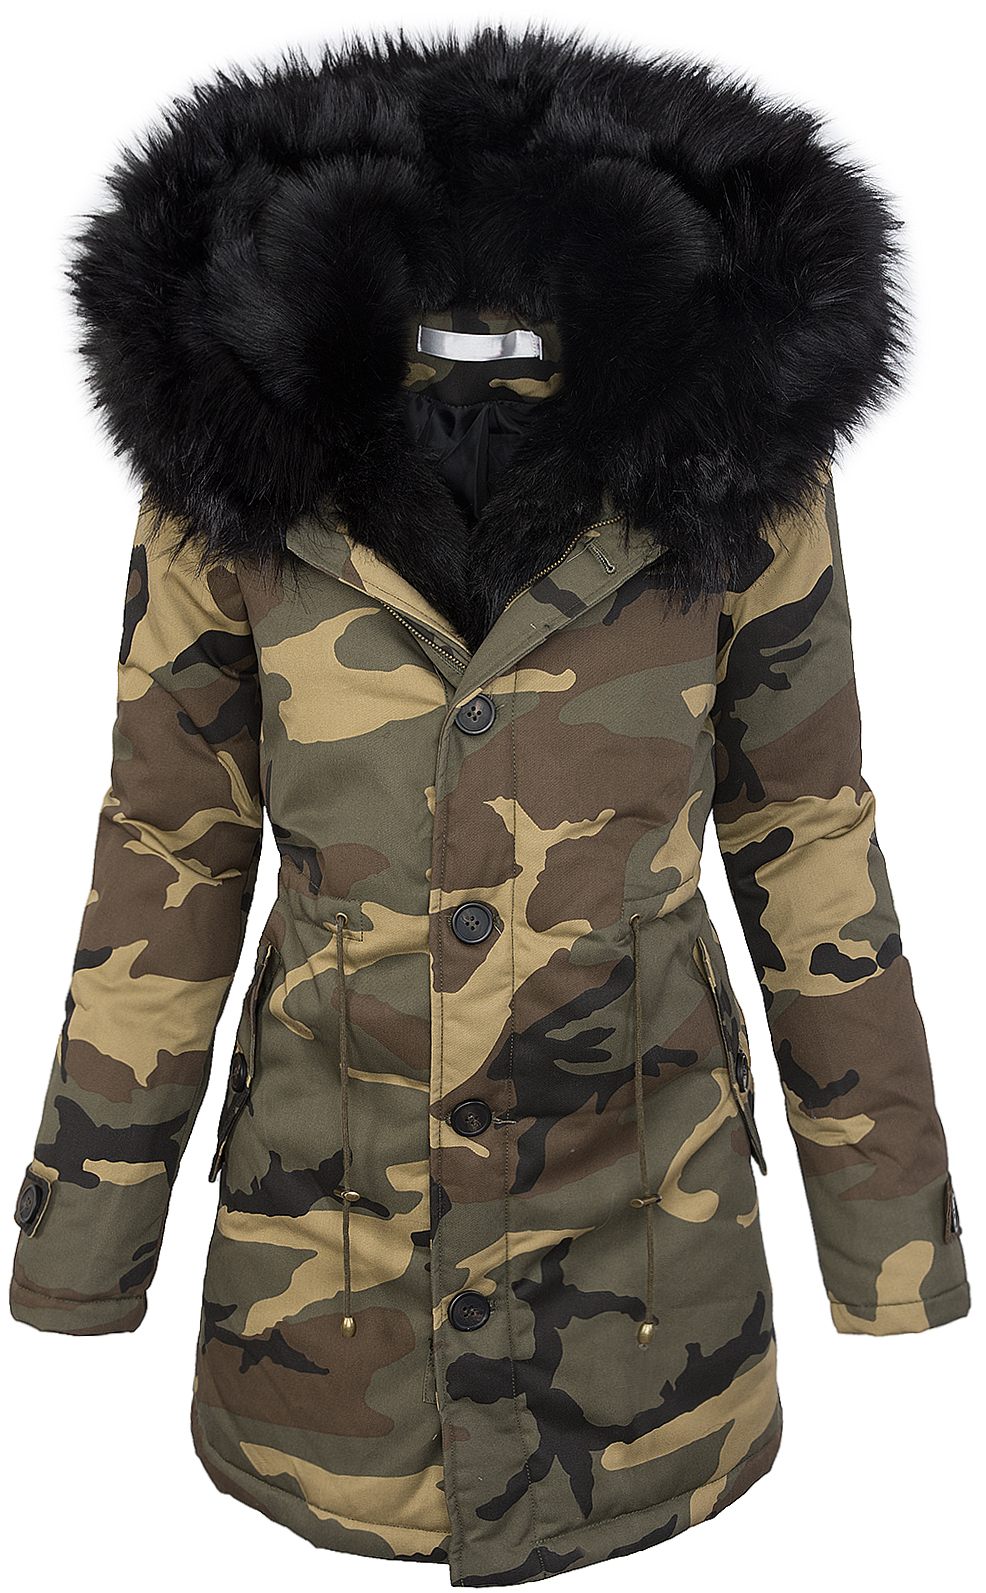 damen winter parka jacke army look damenjacke kunstfell kapuze warm 36 38 40 ebay. Black Bedroom Furniture Sets. Home Design Ideas